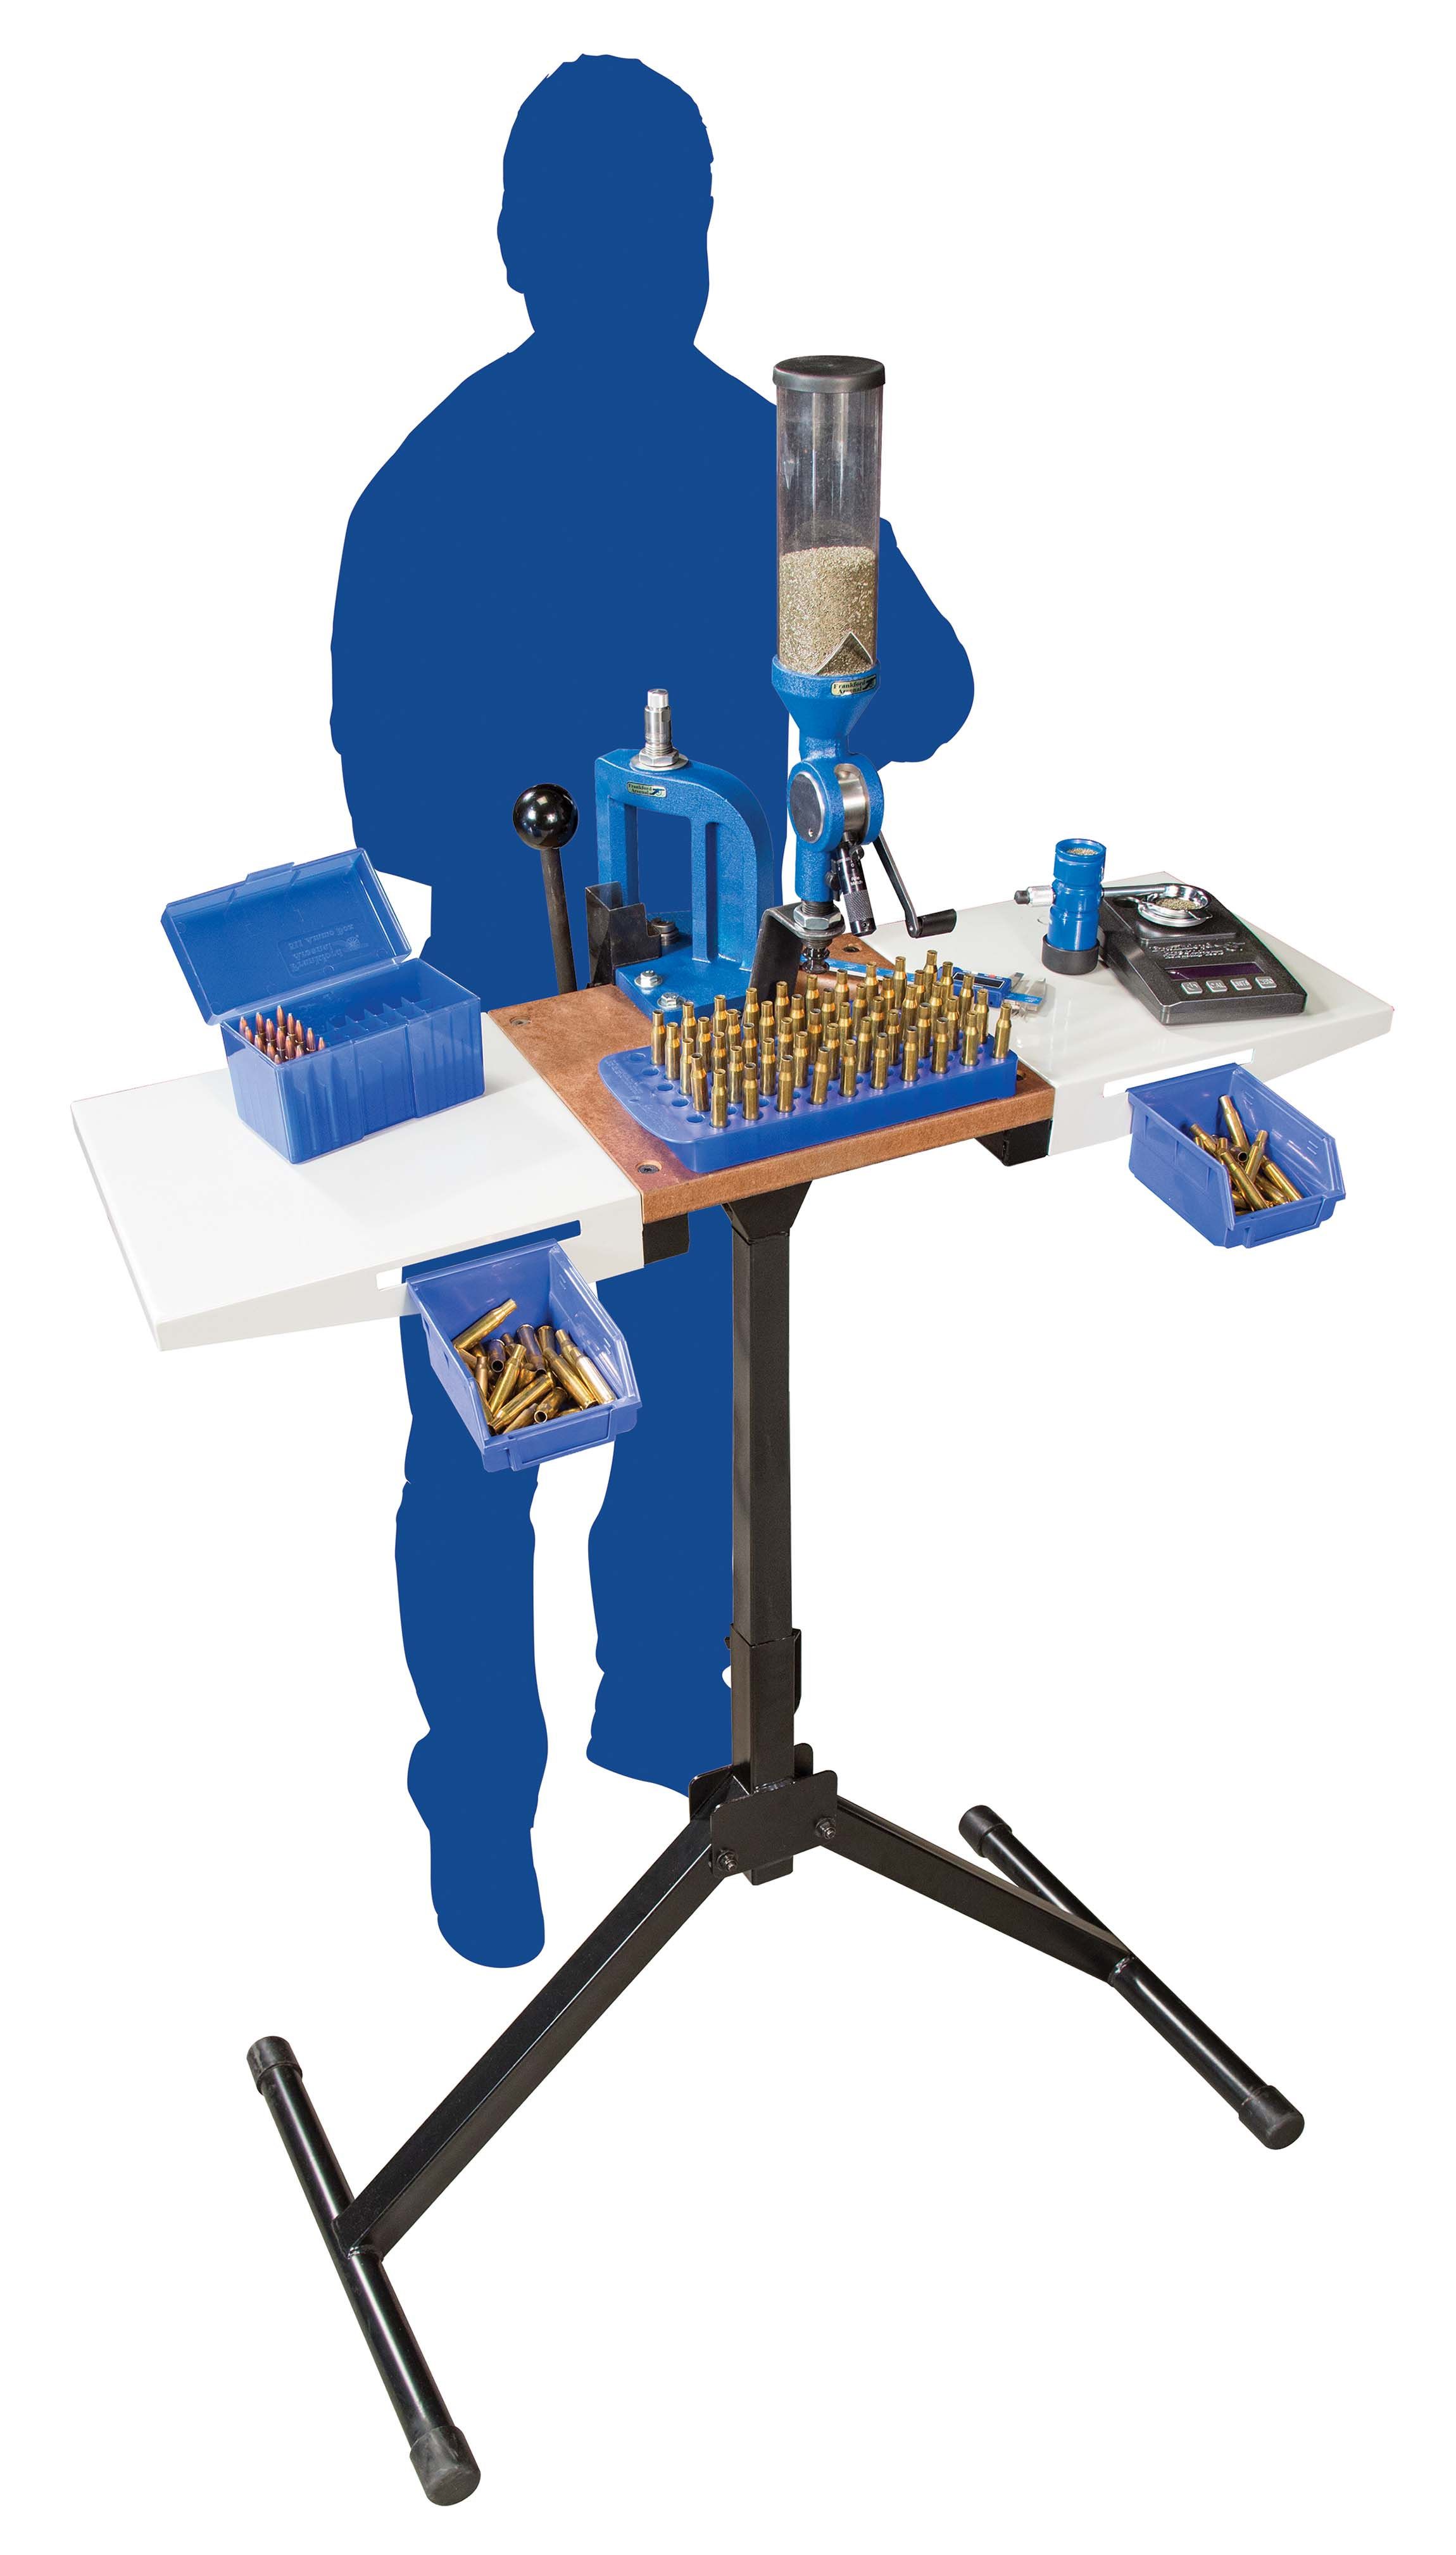 bench reloading budget portable viewtopic a nosler topic on design image view forum